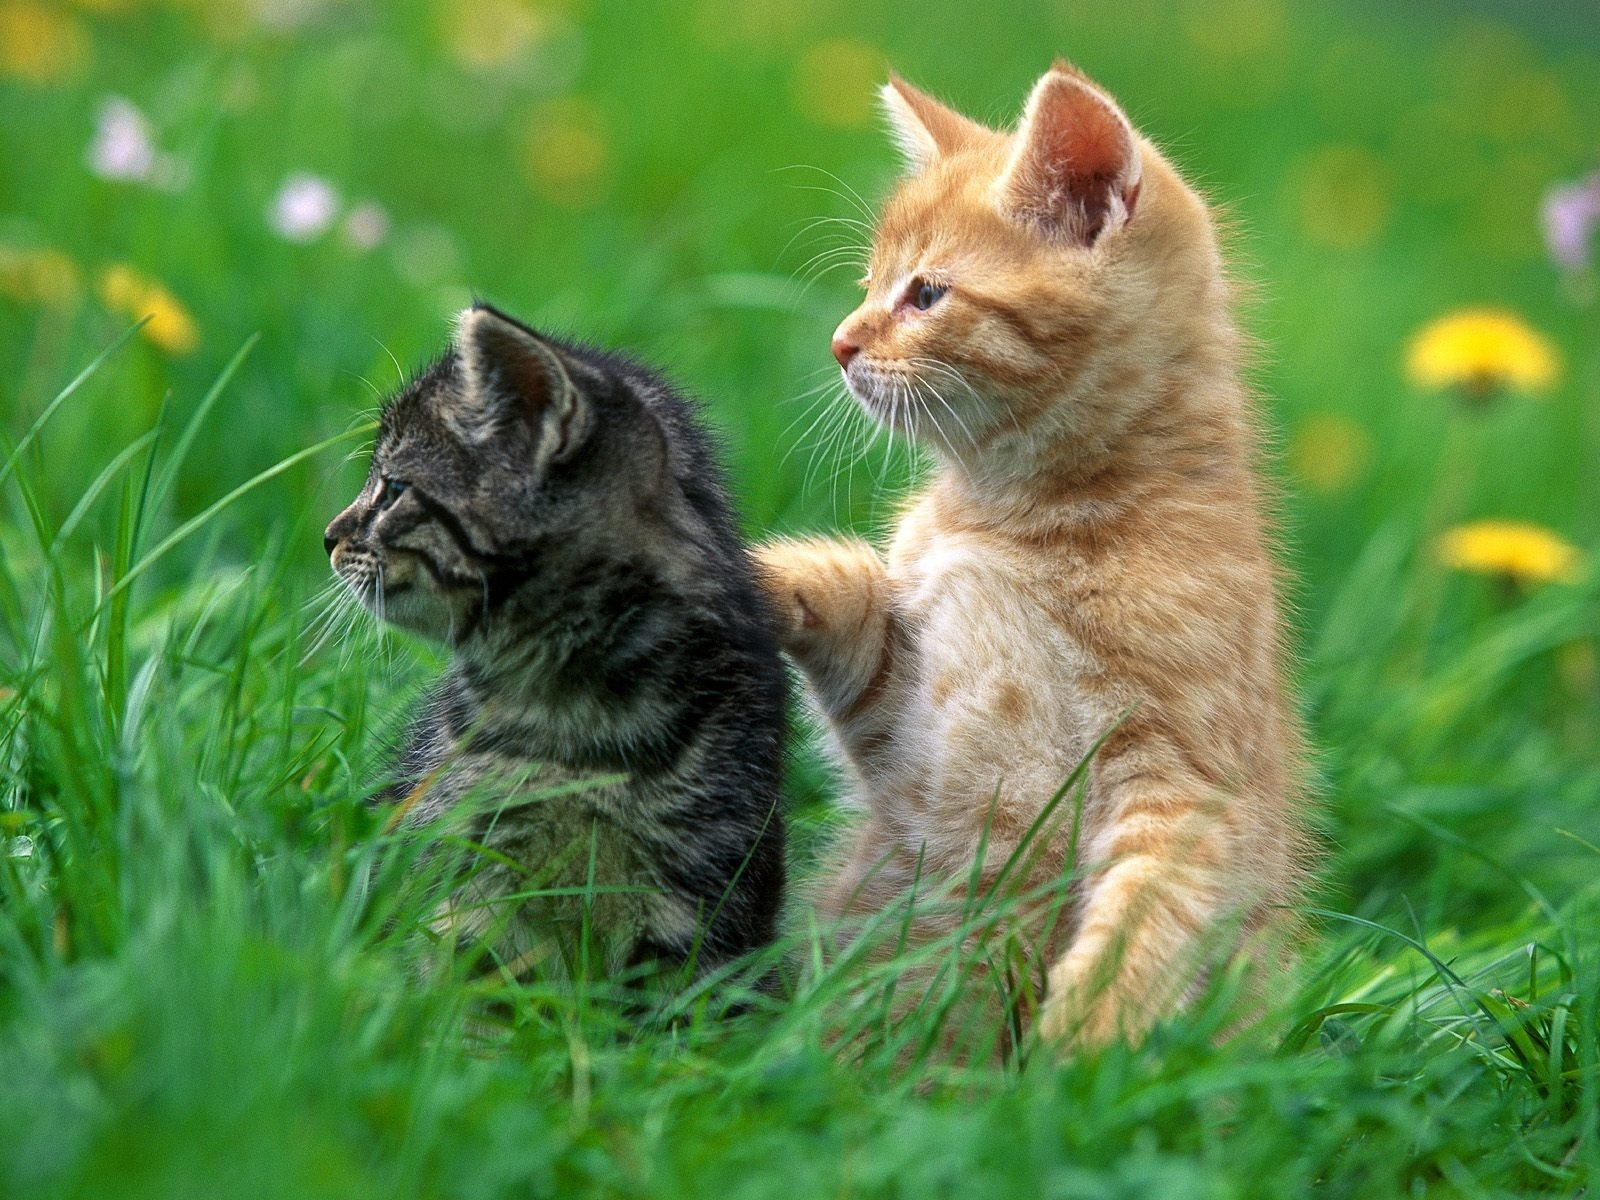 2 kittens wallpaper cats animals wallpapers in jpg format for free 2 kittens wallpaper cats animals wallpapers thecheapjerseys Choice Image